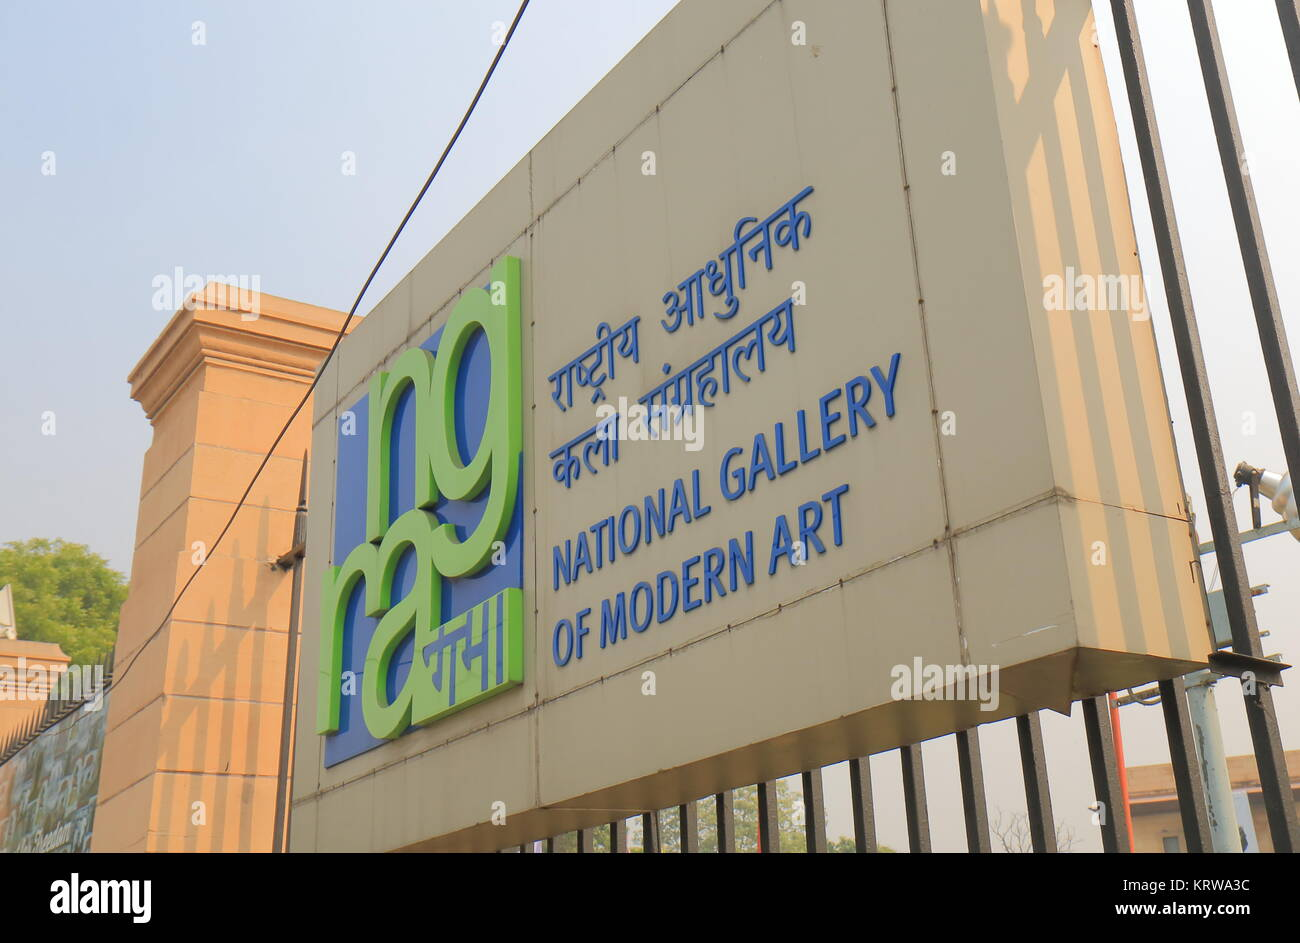 National Gallery Of Modern Art In New Delhi India Stock